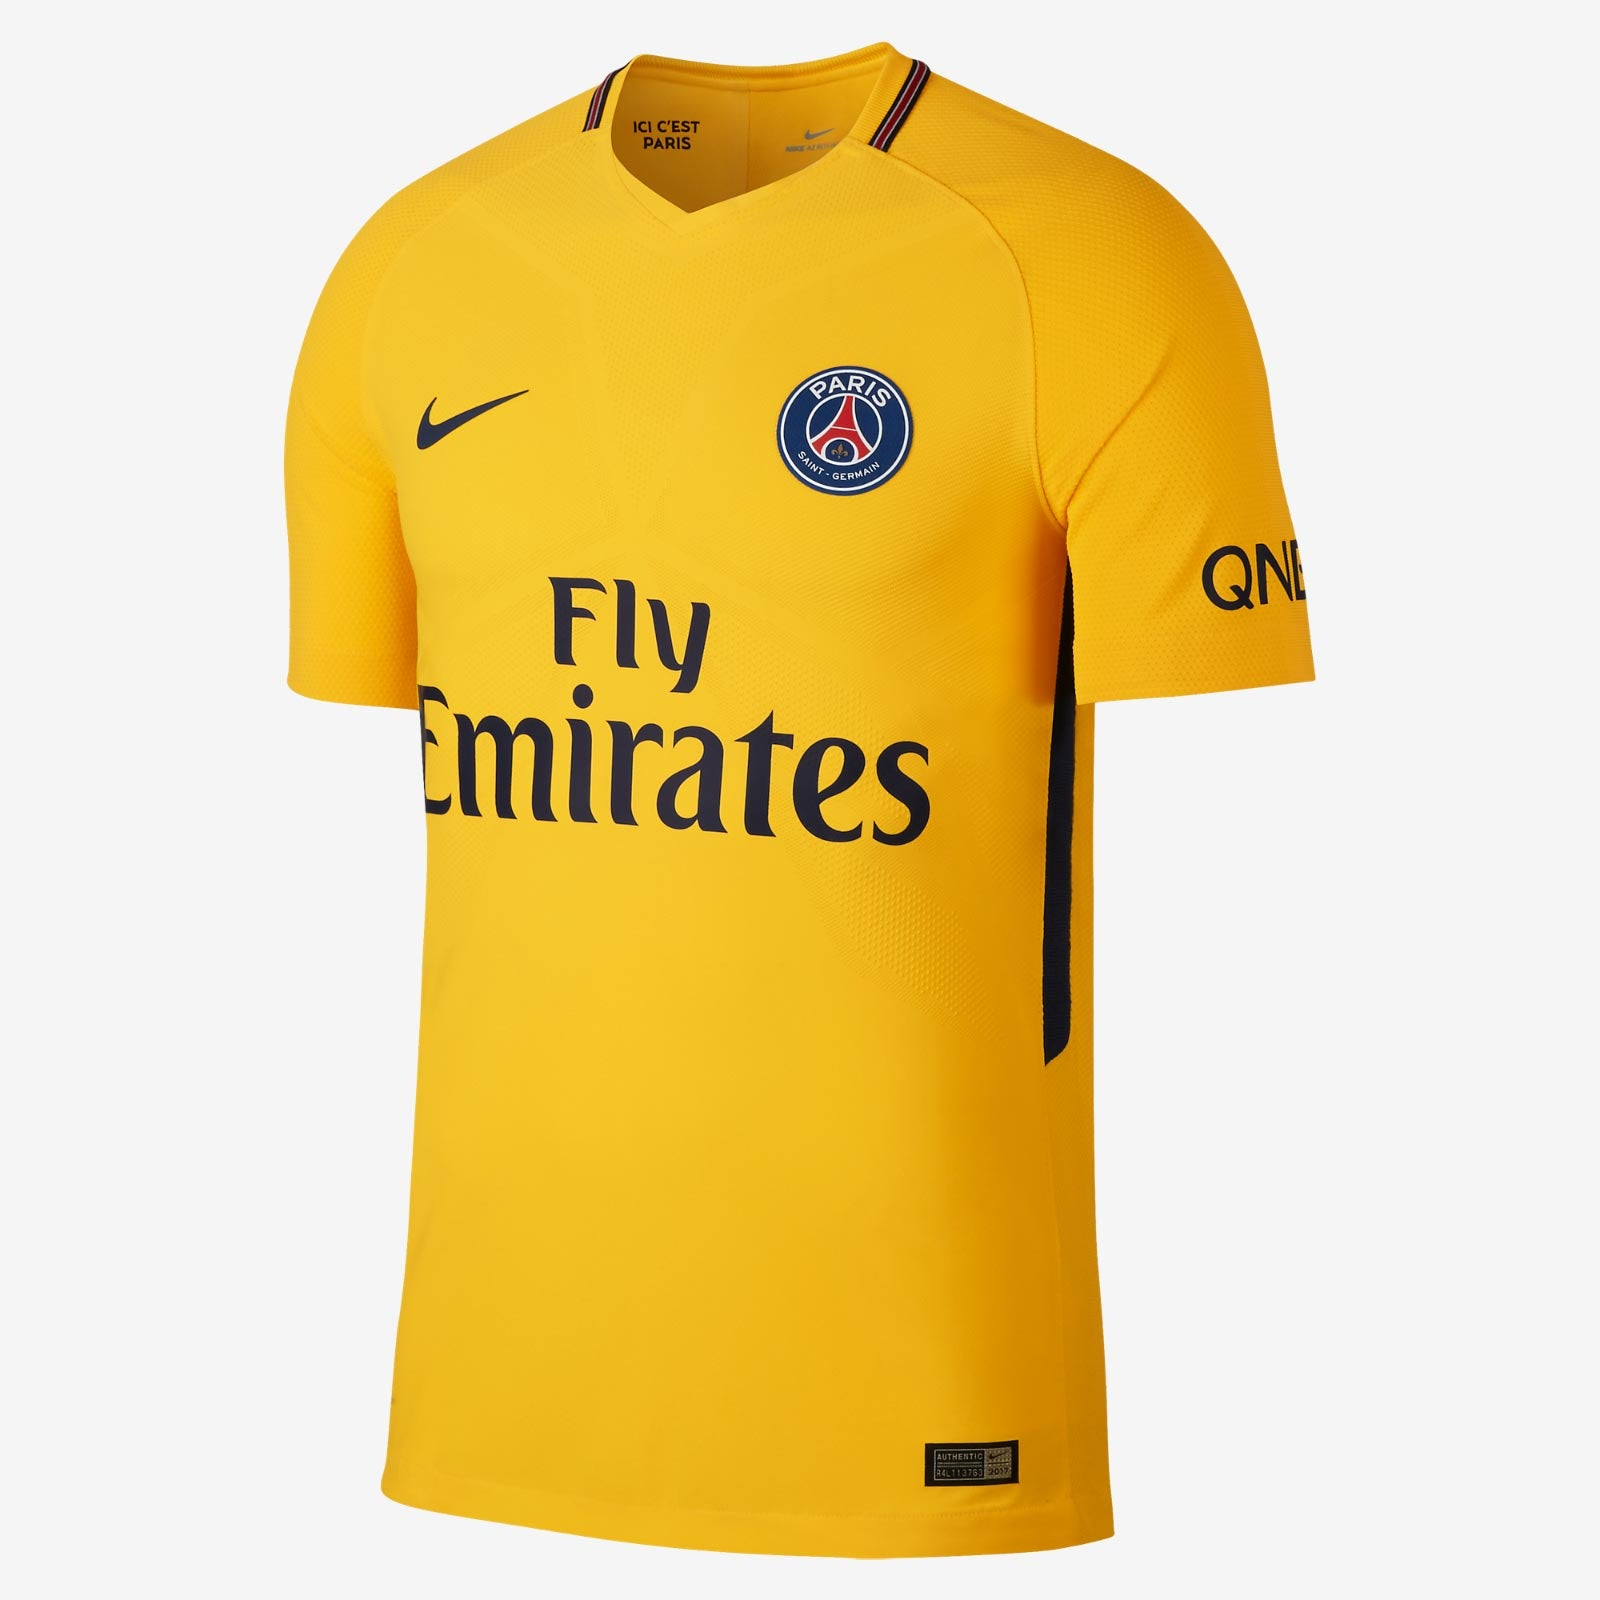 reputable site 7c79a d3222 Neymar Jr #10 PSG Jersey Home/Away - From S to XL